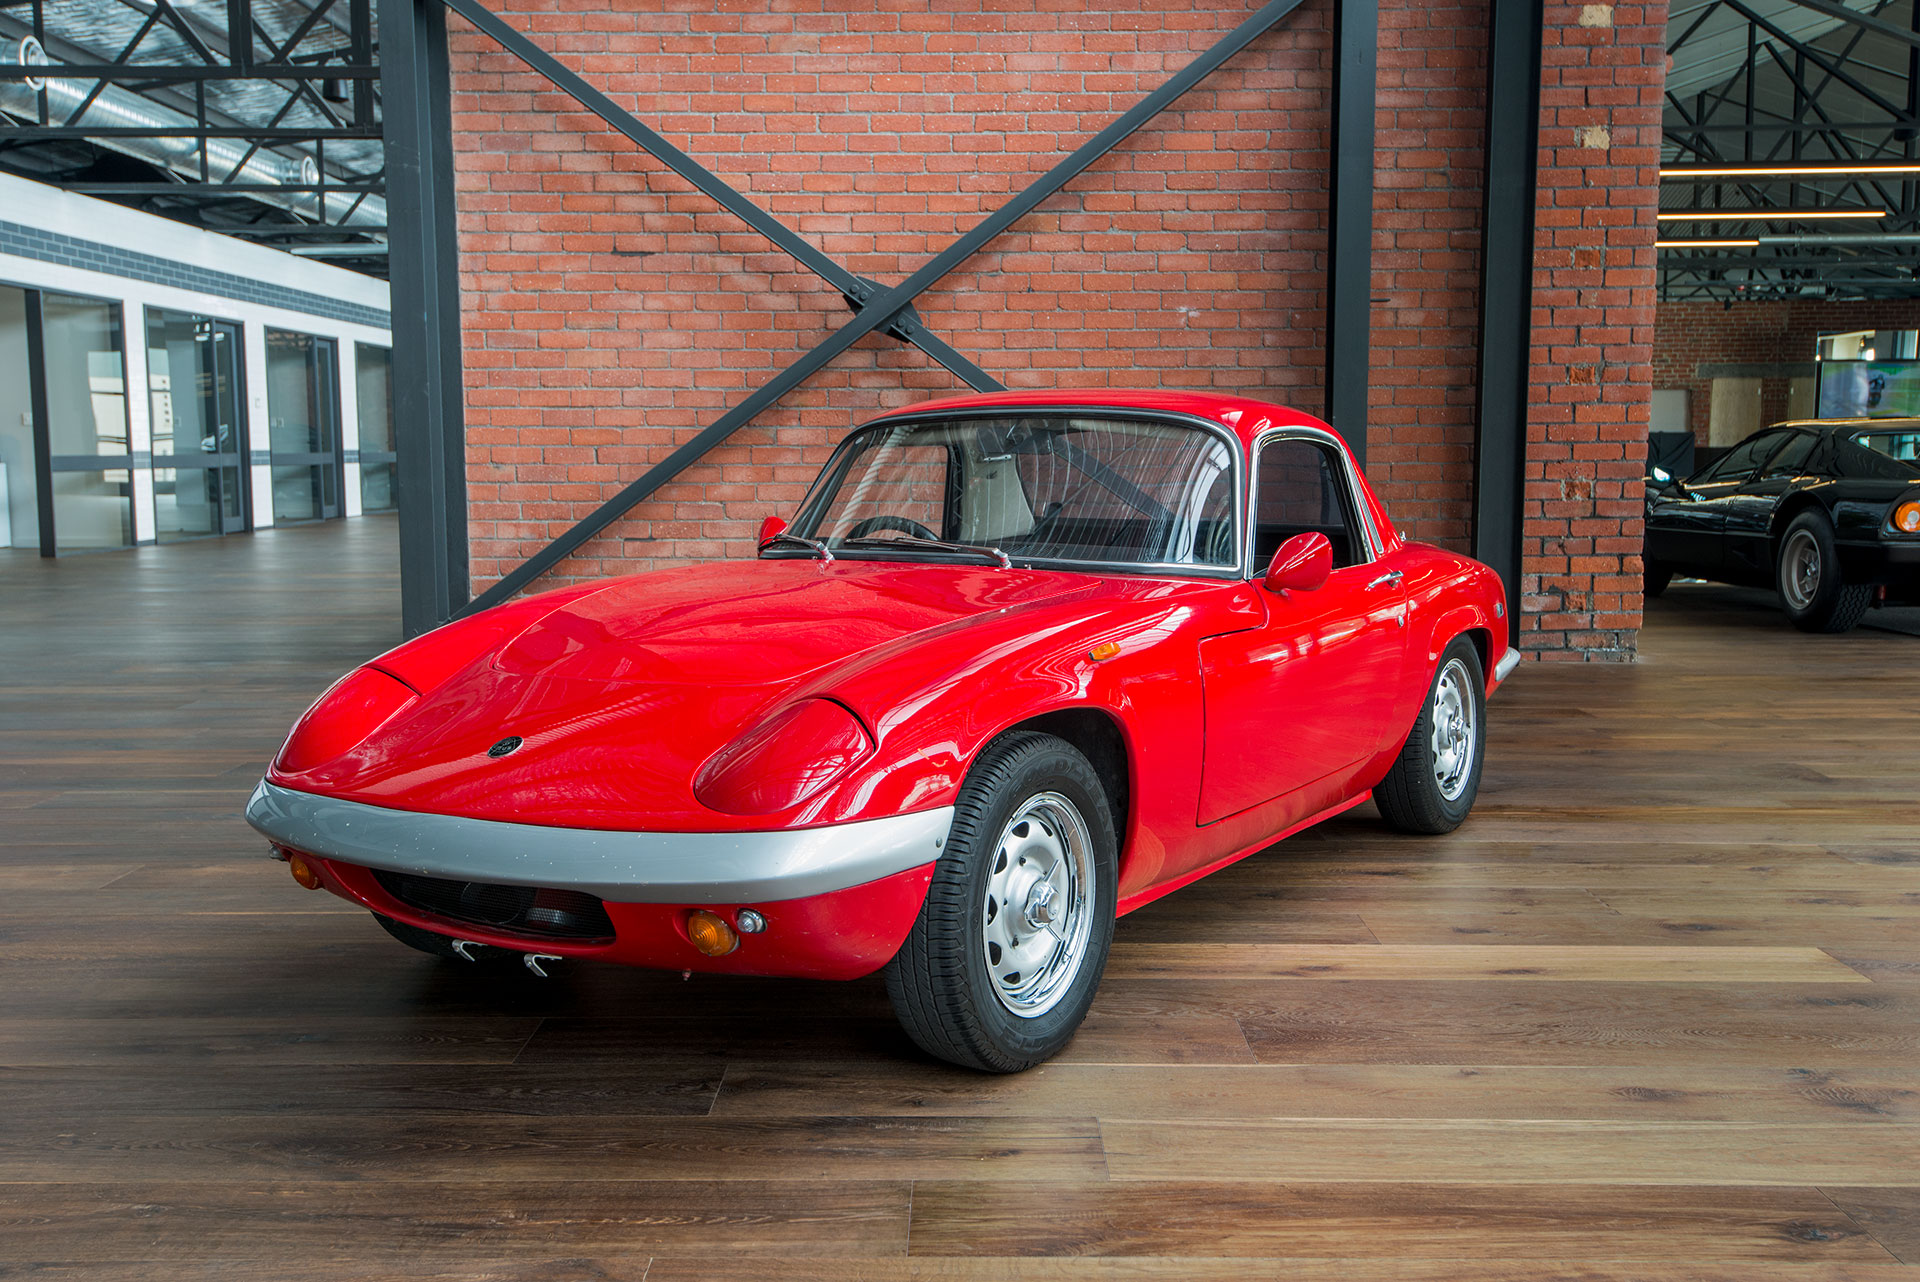 Mazda Mx5 For Sale >> 1968 Lotus Elan SE FHC - Richmonds Classic & Sports Cars ...